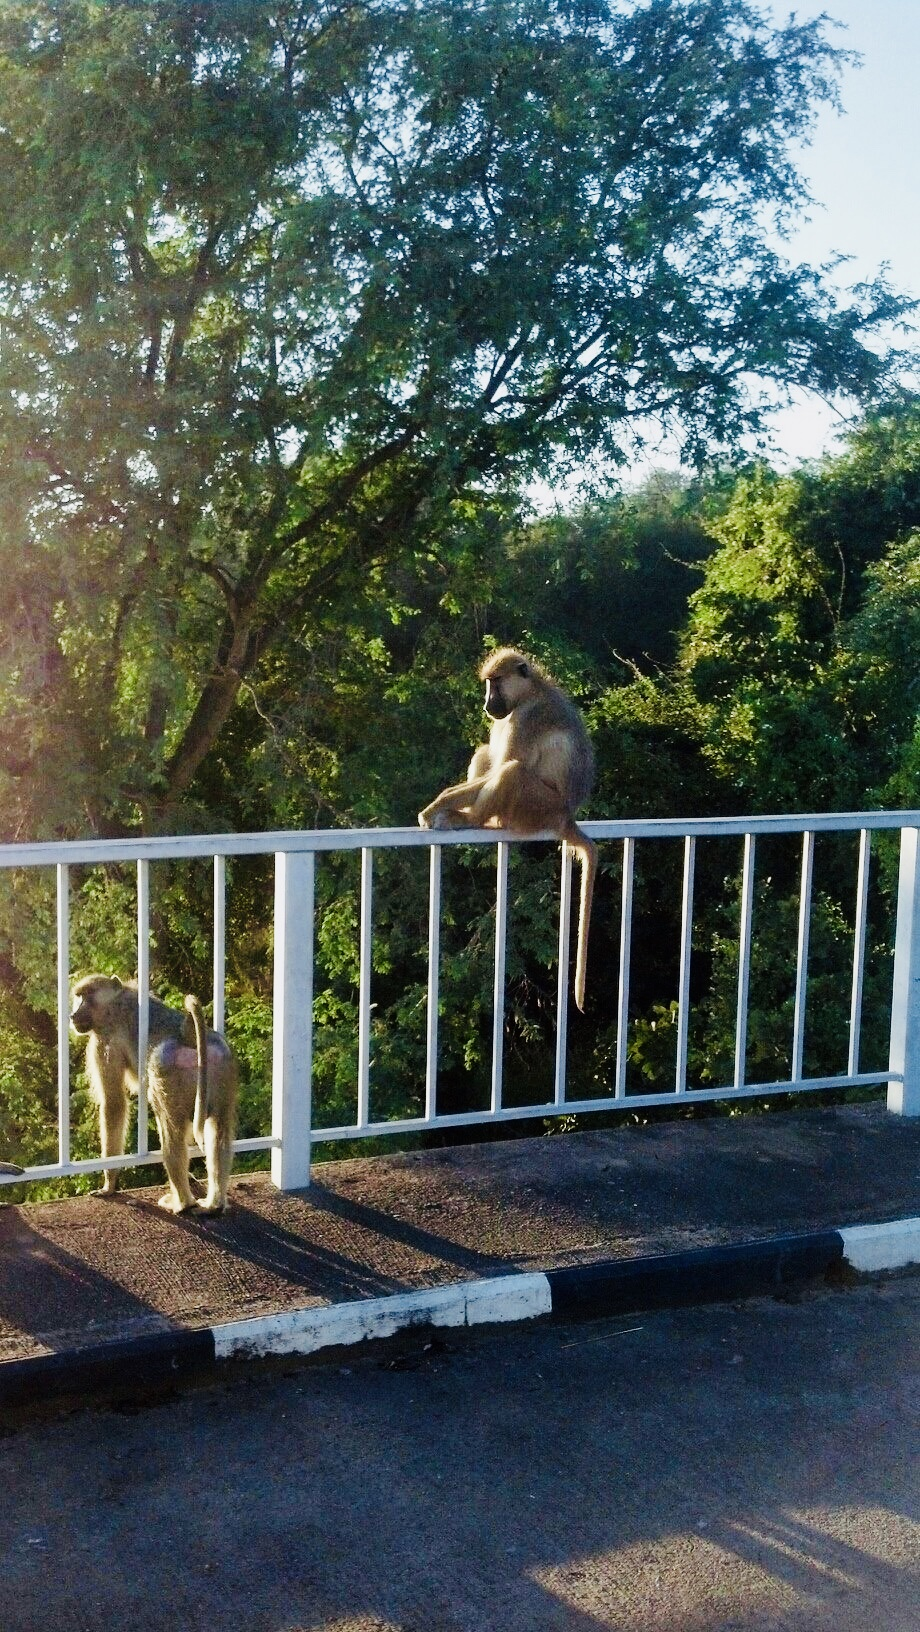 Baboons near the entrance of the park